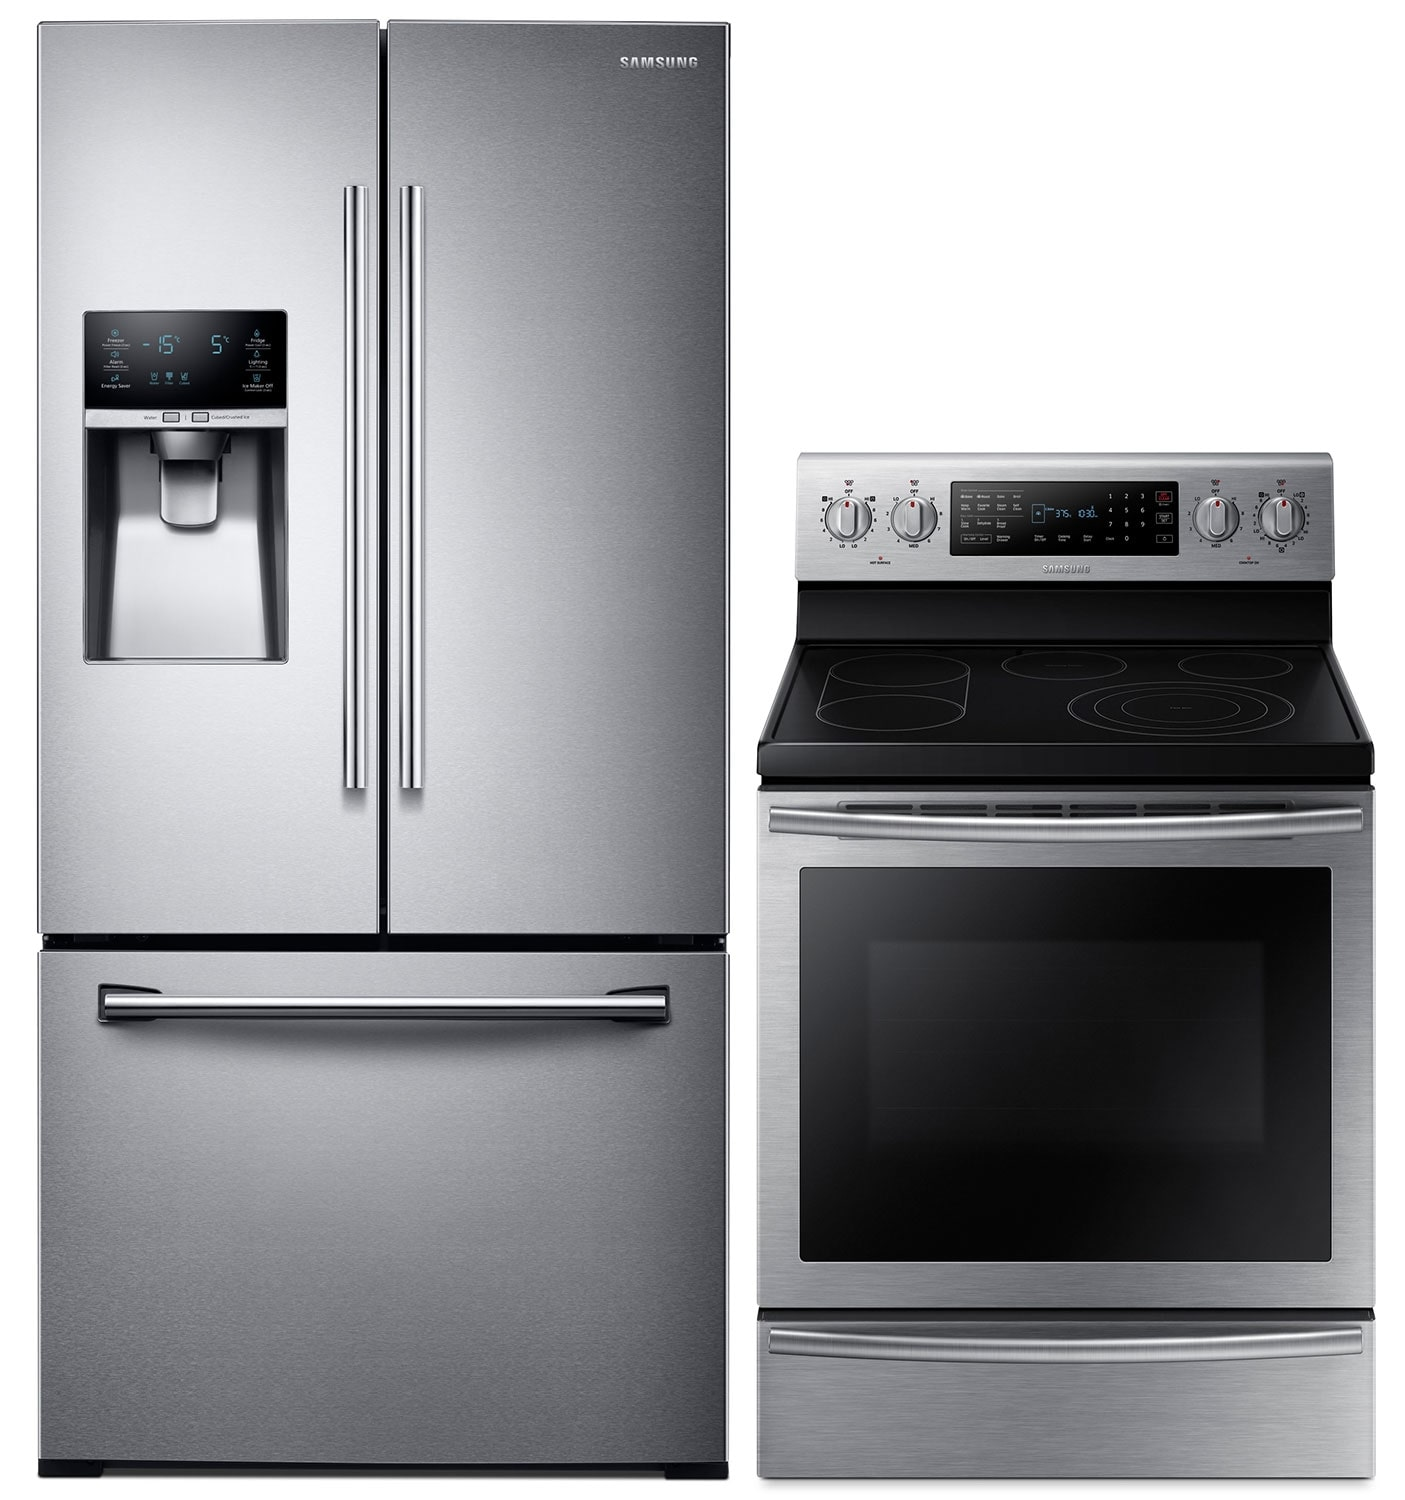 Cooking Products - Samsung 25.5 Cu. Ft. Refrigerator and 5.9 Cu. Ft. Range - Stainless Steel